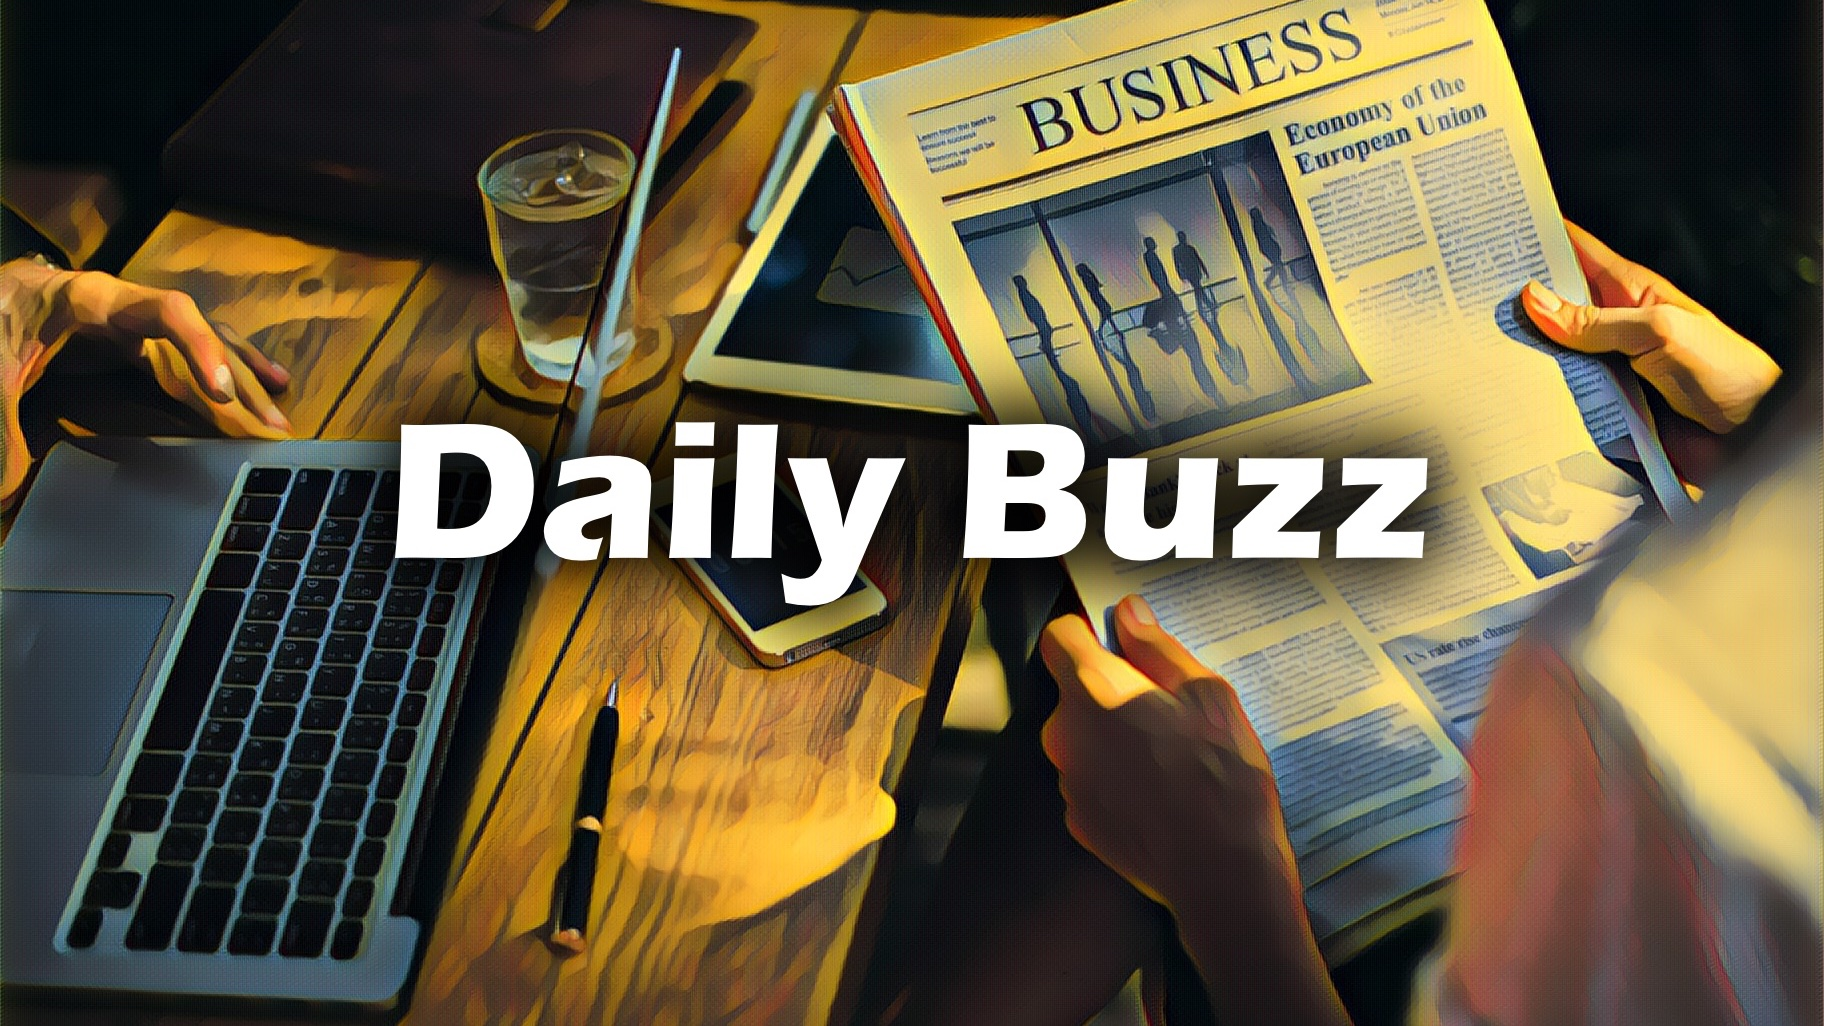 DailyBuzz Sunday 8 July 2018